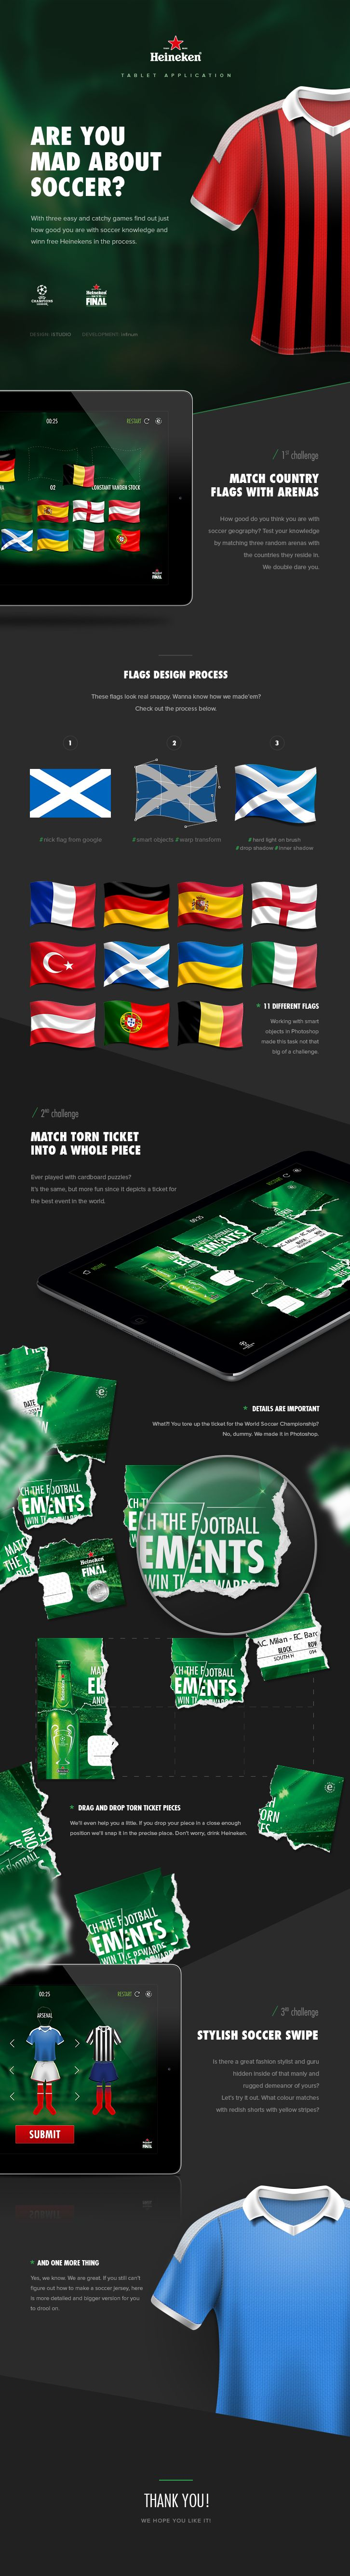 We are very proud to announce that we at iSTUDIO designed, and @Nicholas Seymore Seymore Seymore Reimønenq developed, this ass kicking app for @Mark Van Der Voort Van Der Voort Van Der Voort Heineken. We paid special care to details in all aspects of this project from game mechanics, illustrations to GUI and UX.  #tablet #application #design #app #UI #GUI #UX #illustration #case #casestudy